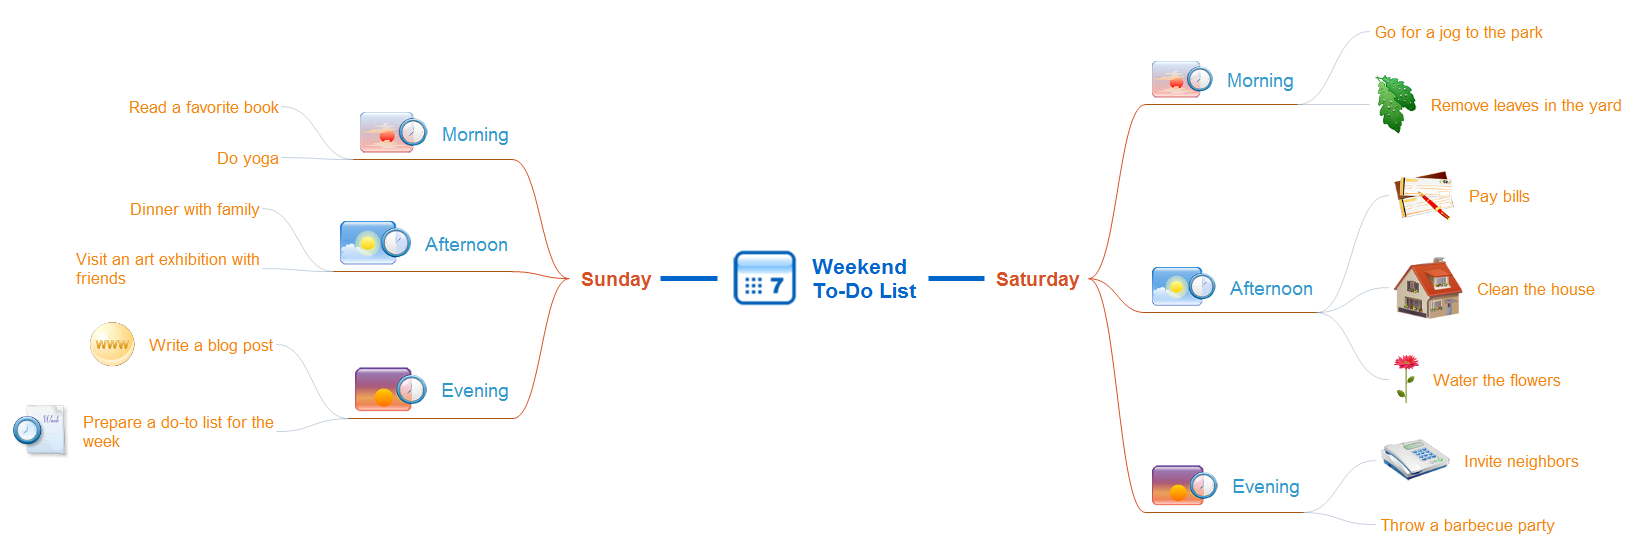 Mindmap - Weekend to-do list